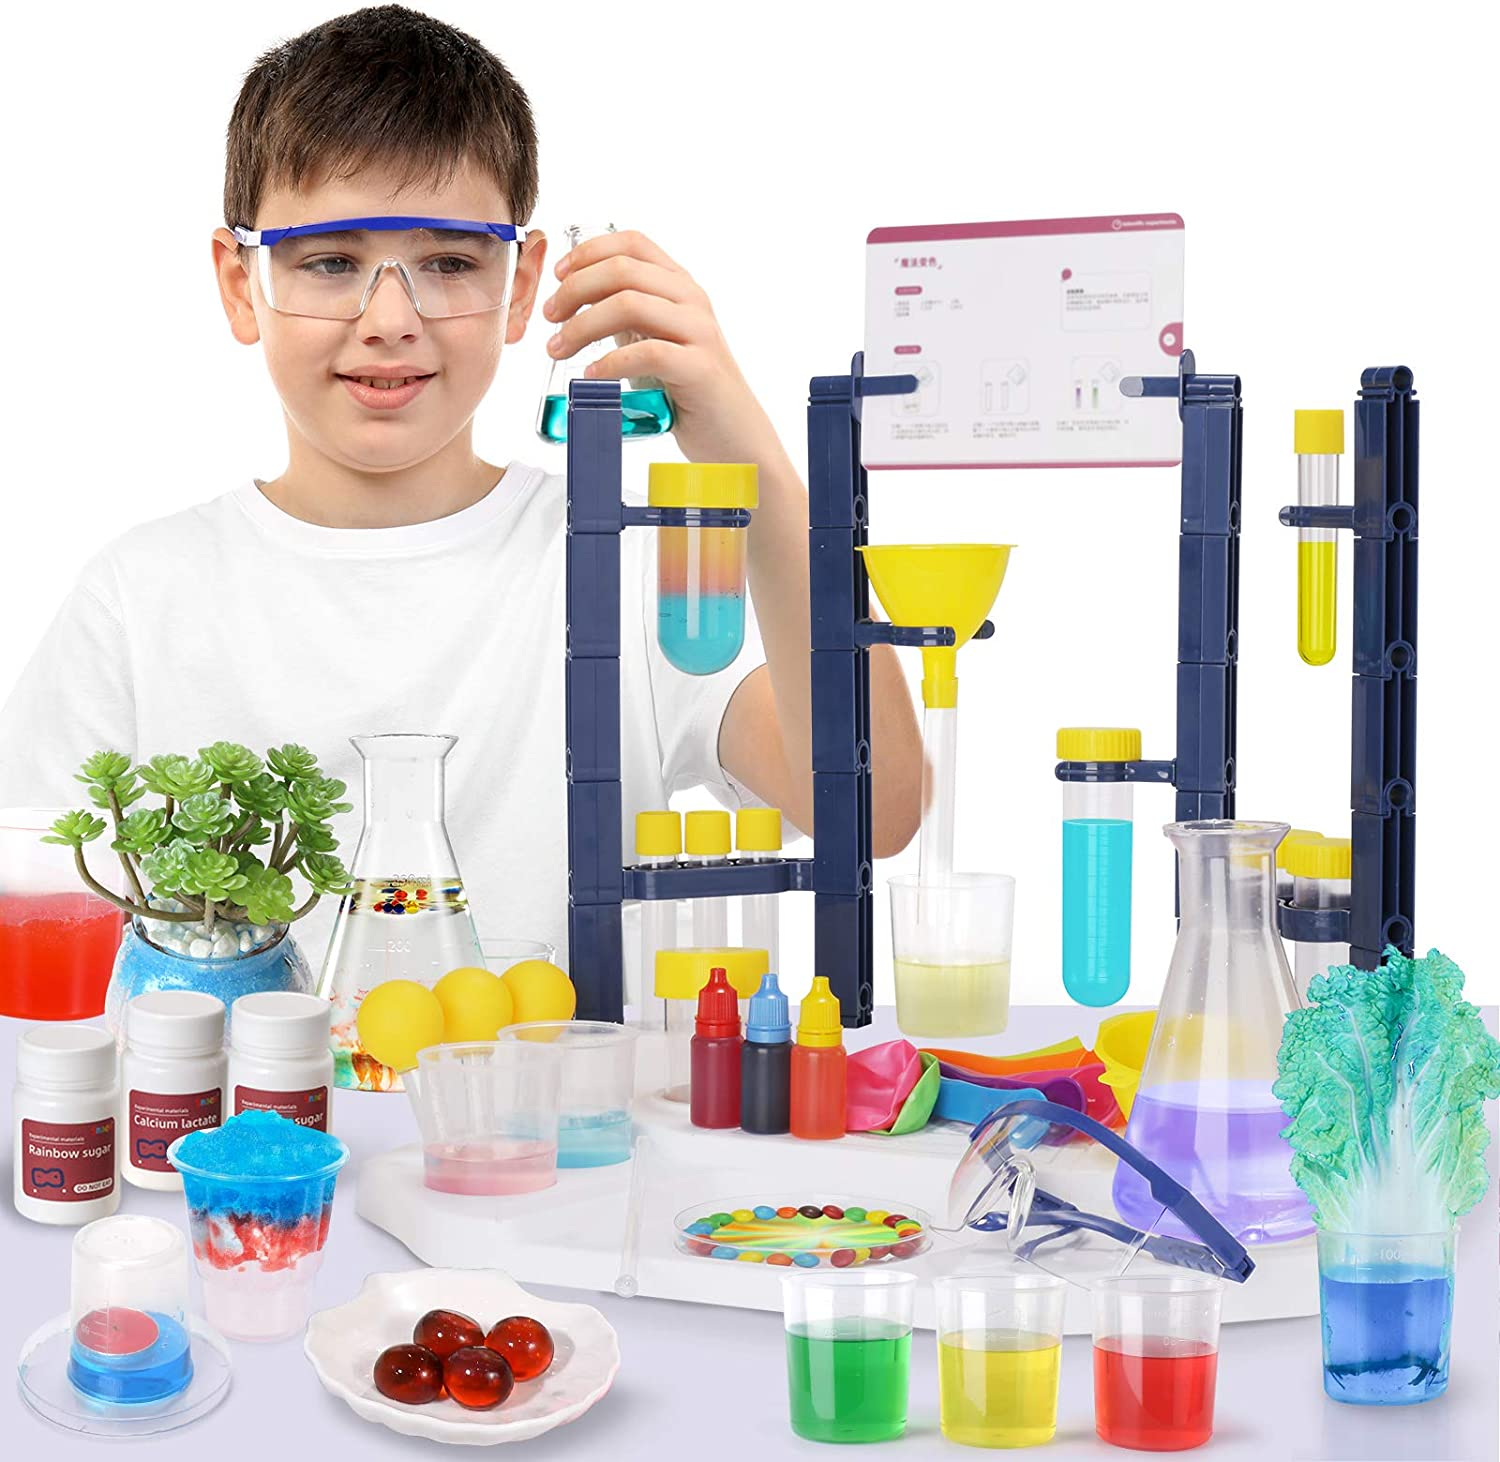 SNAEN Super Lab Science Kit with 30 Magic Scientific Experiments,STEM Education Toys for Kids Ages 3+,Build A Chemistry Station, Homeschool, Deluxe 110 Piece Set